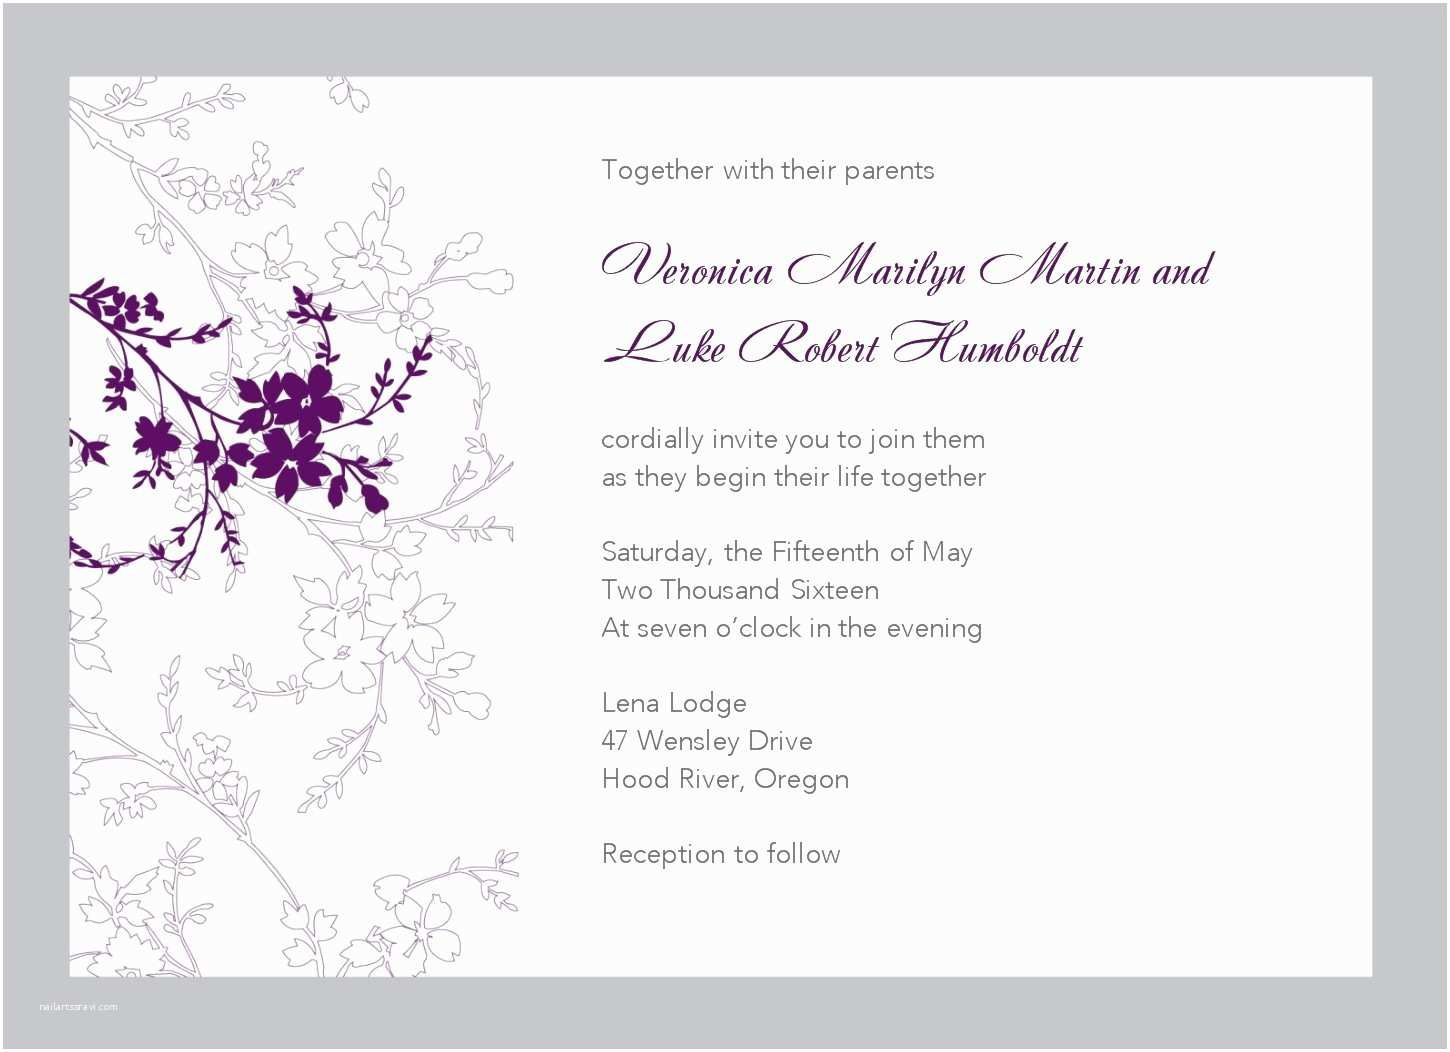 007 Incredible Free Wedding Template For Word Concept  Invitation In Marathi MenuFull